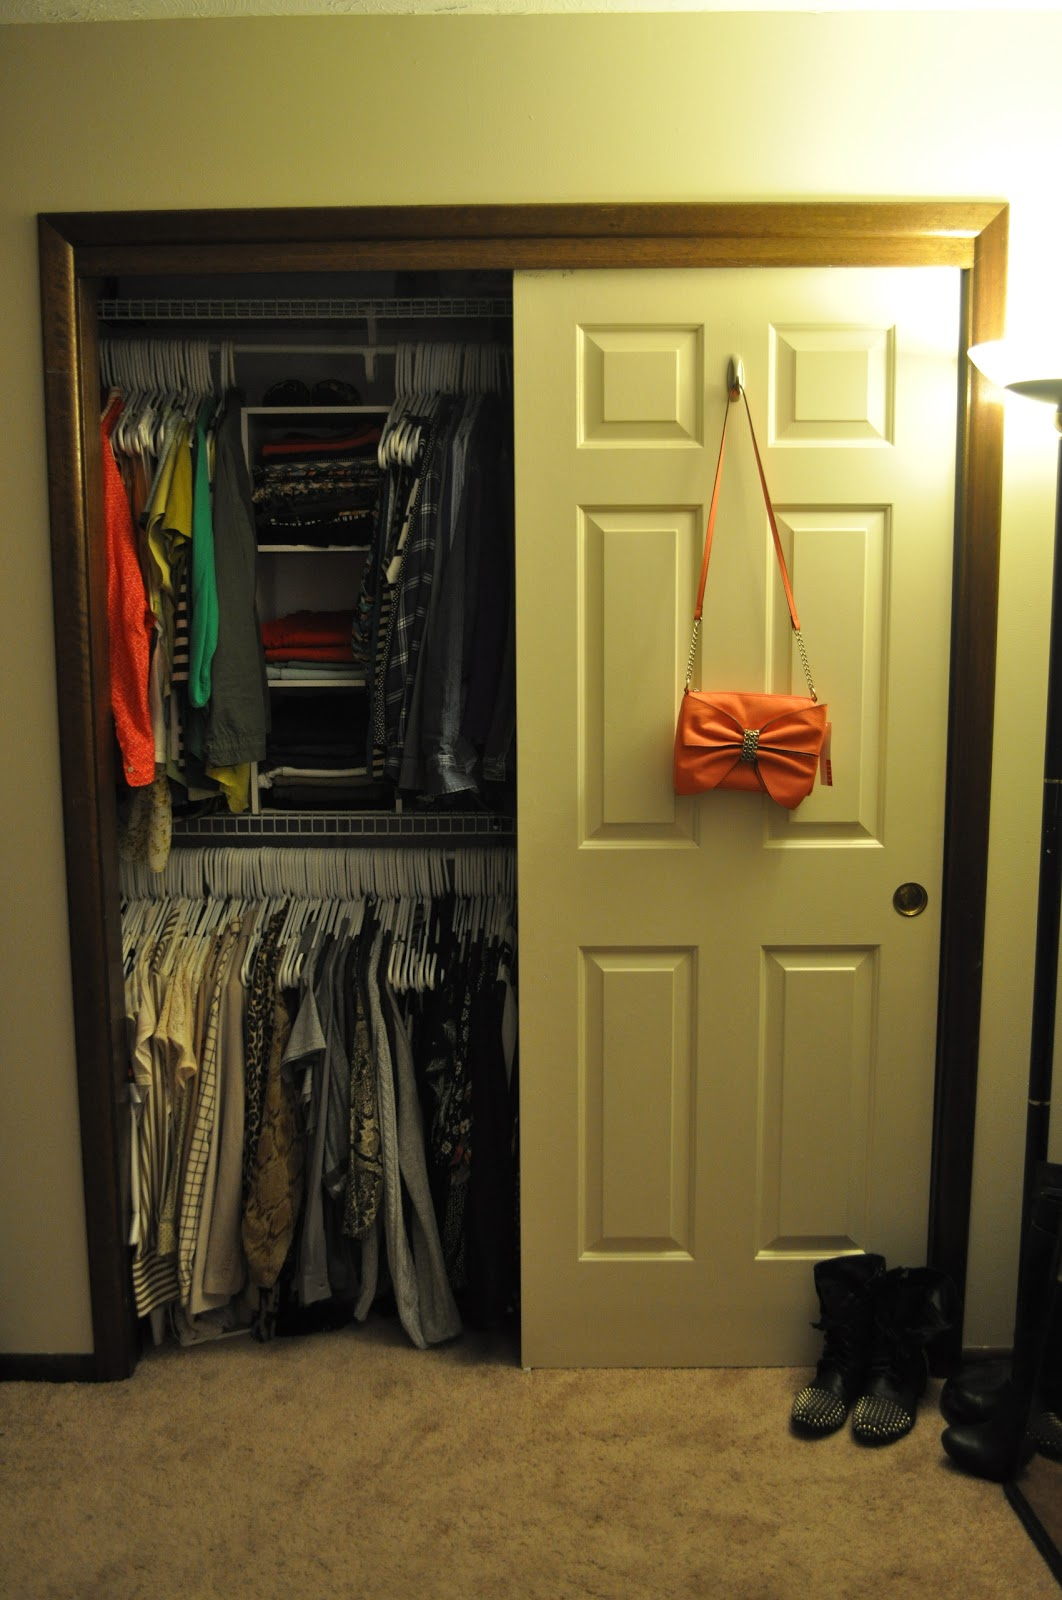 Your Closet Can Simplify Your Life The Art Of The Capsule: How To Maximize Your Limited Space And Organize Your